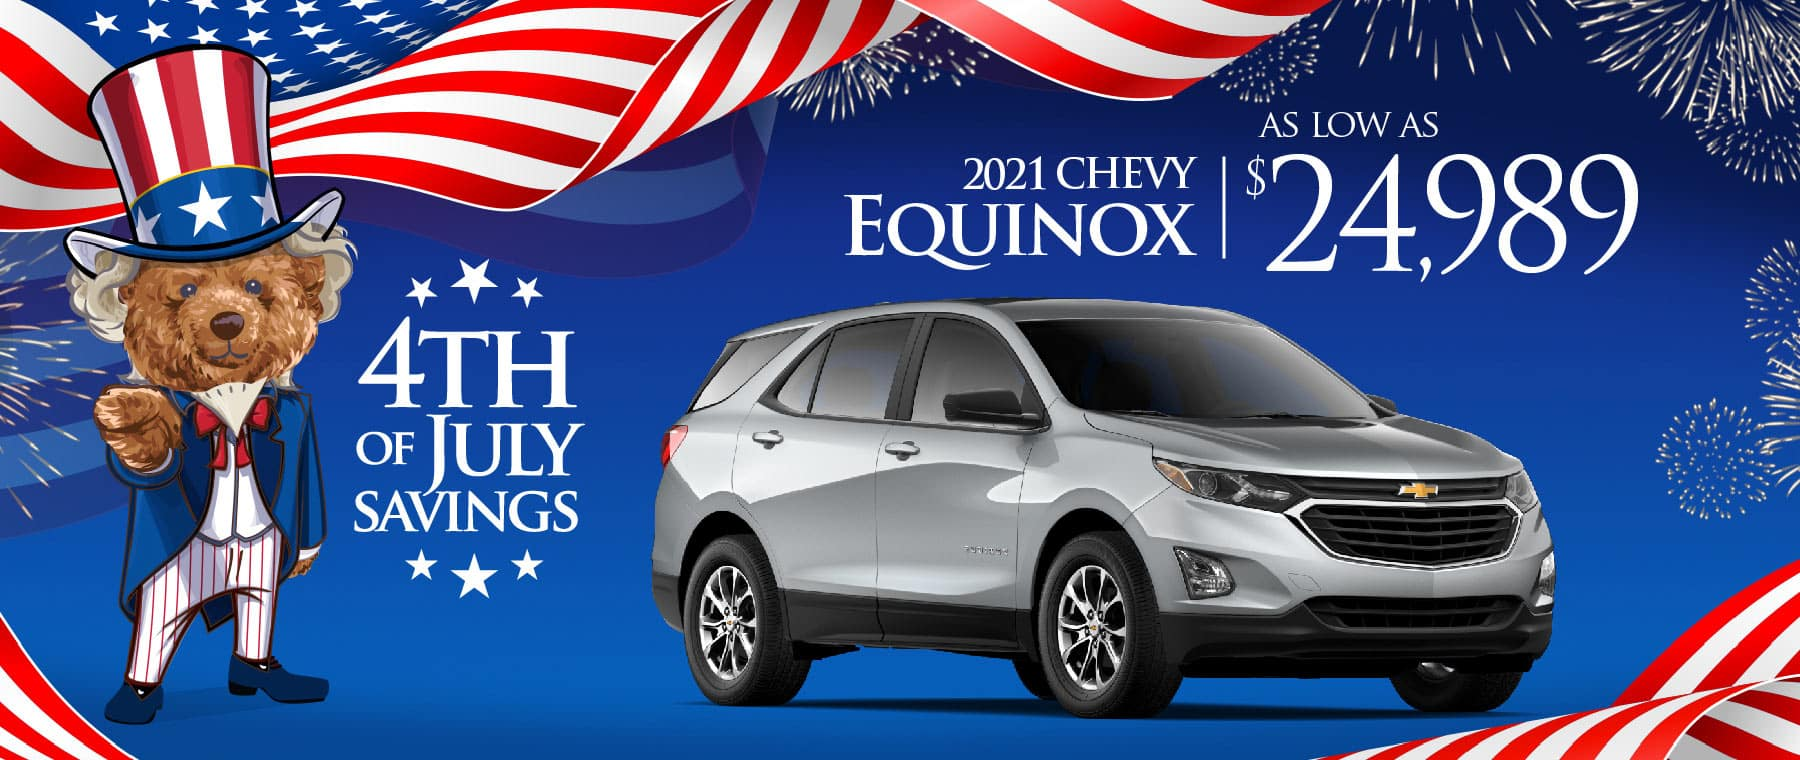 2021 Chevy Equinox - save up to $4227